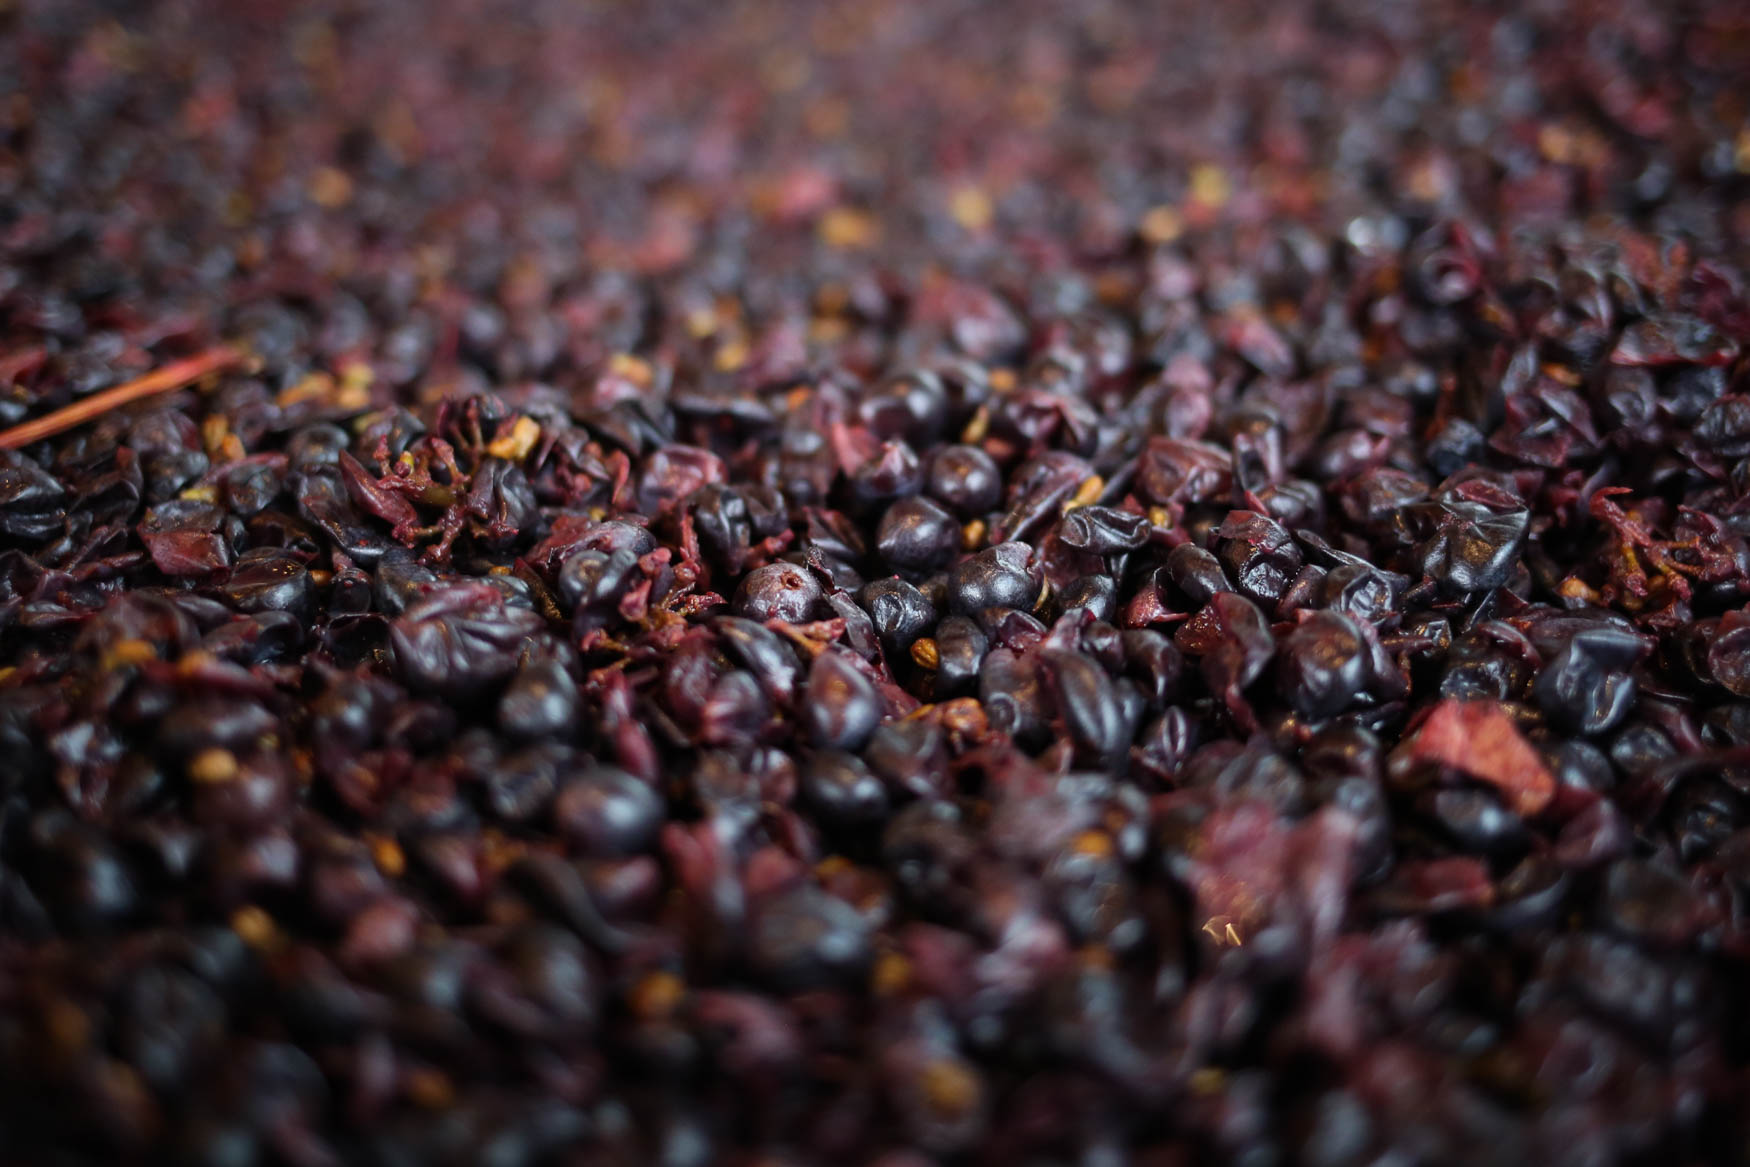 The grape juice and the skins are placed in large bins, where the skins float to the top. That top layer, which is called a cap, is mixed back in to the juice in order to give the wine its complex flavor. (Amanda Andrade-Rhoades/DC Refined)<p></p><p></p>